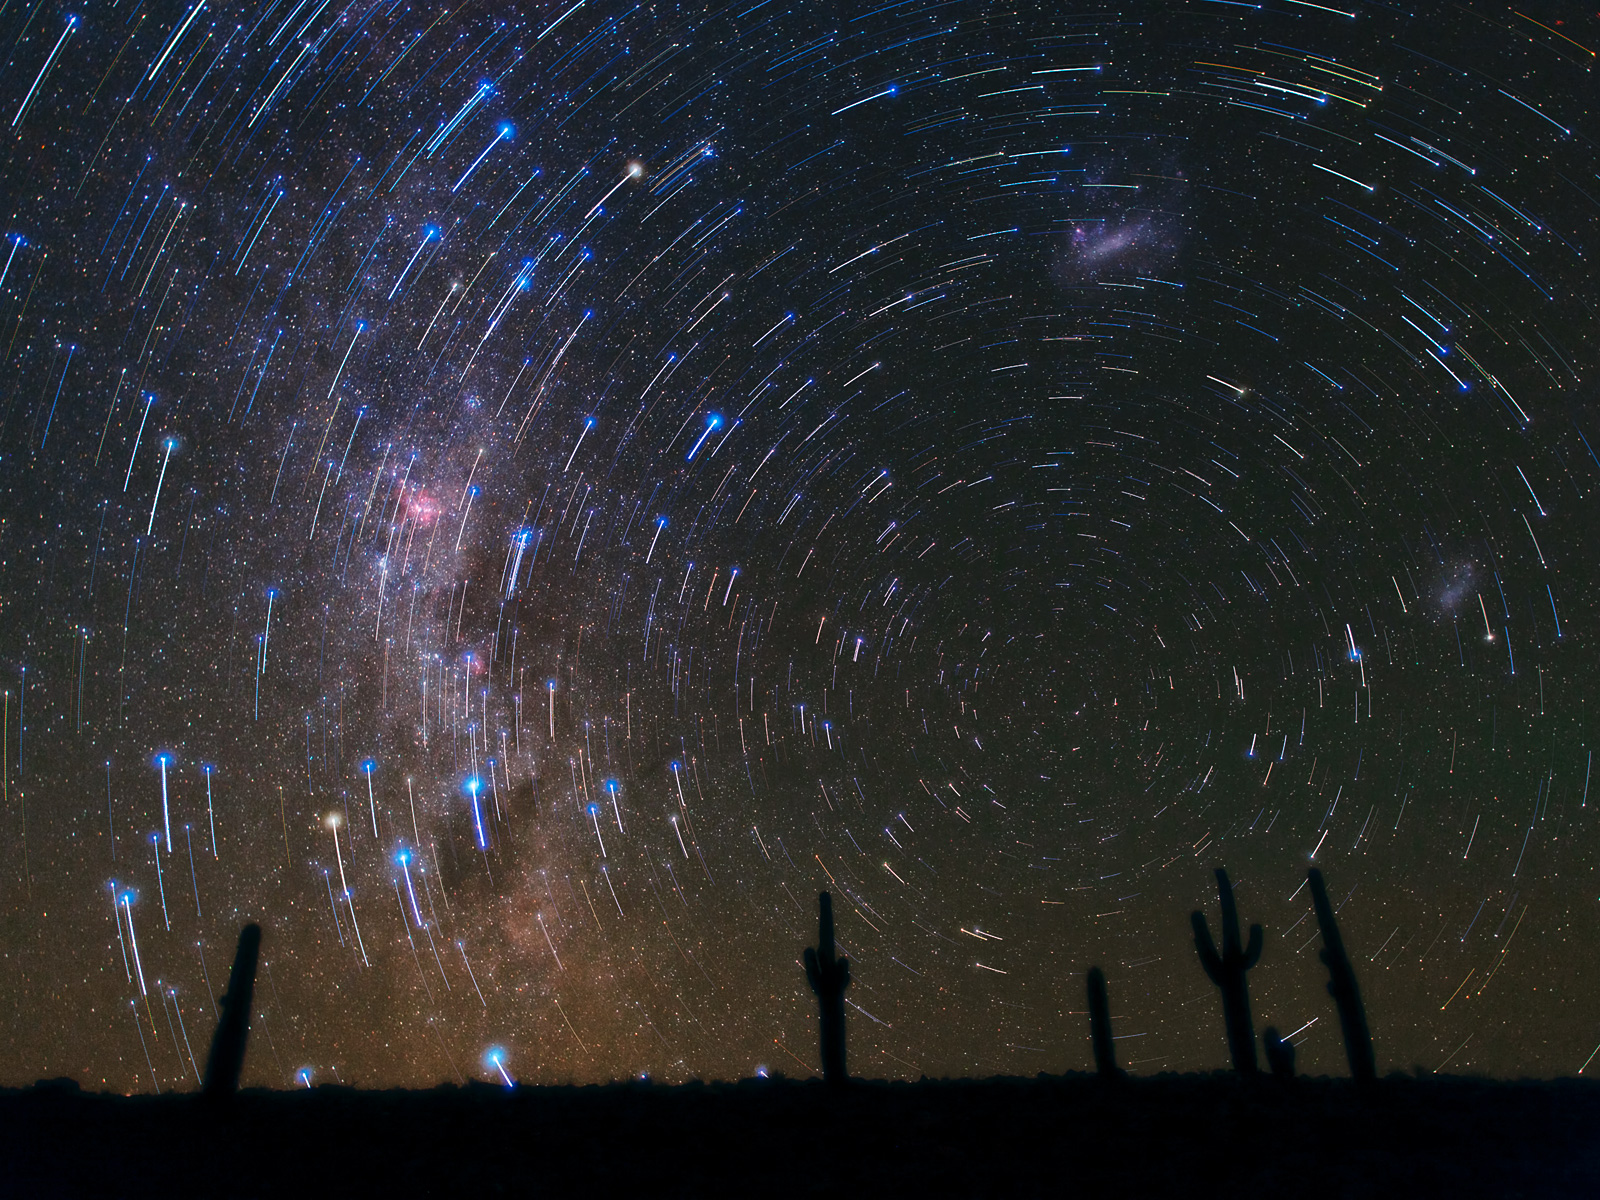 Star Trails Circling South Celestial Pole